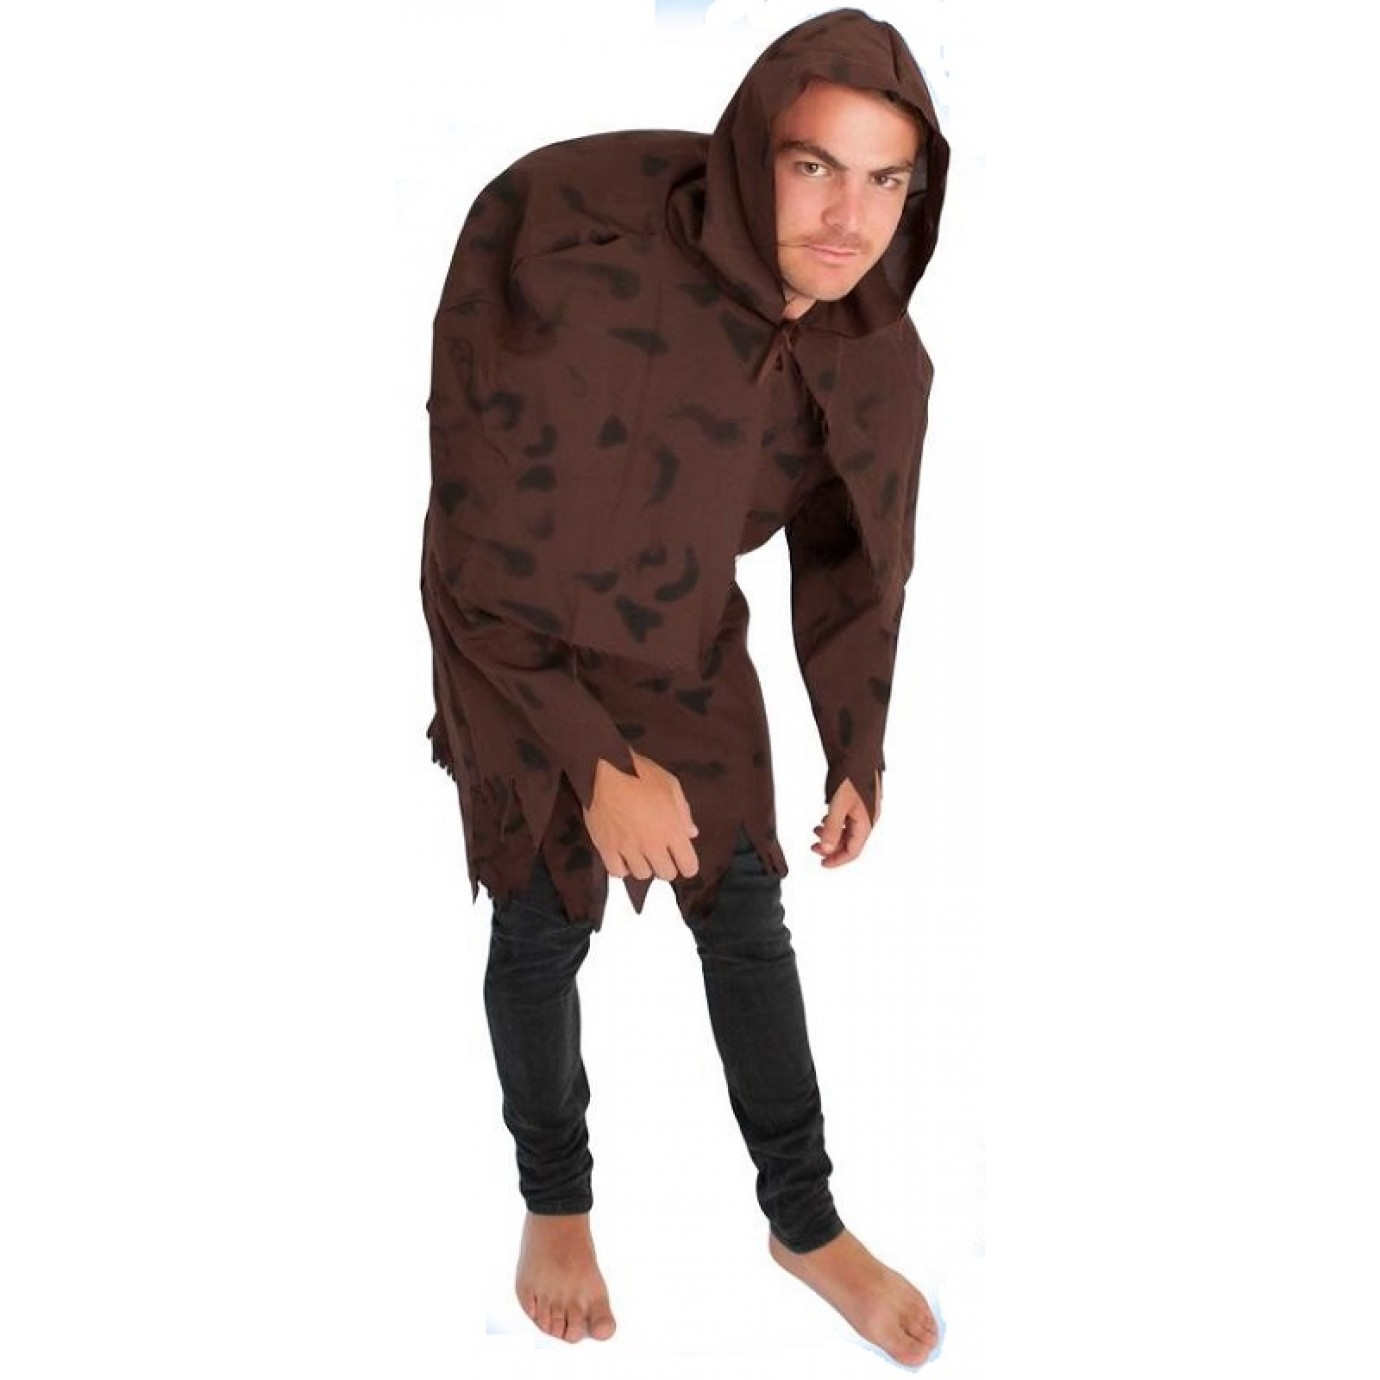 uk availability 9fea0 b3588 Adult Costume - Hunchback   Men s General   Male   Shop by Size   Costumes    The Party People Shop